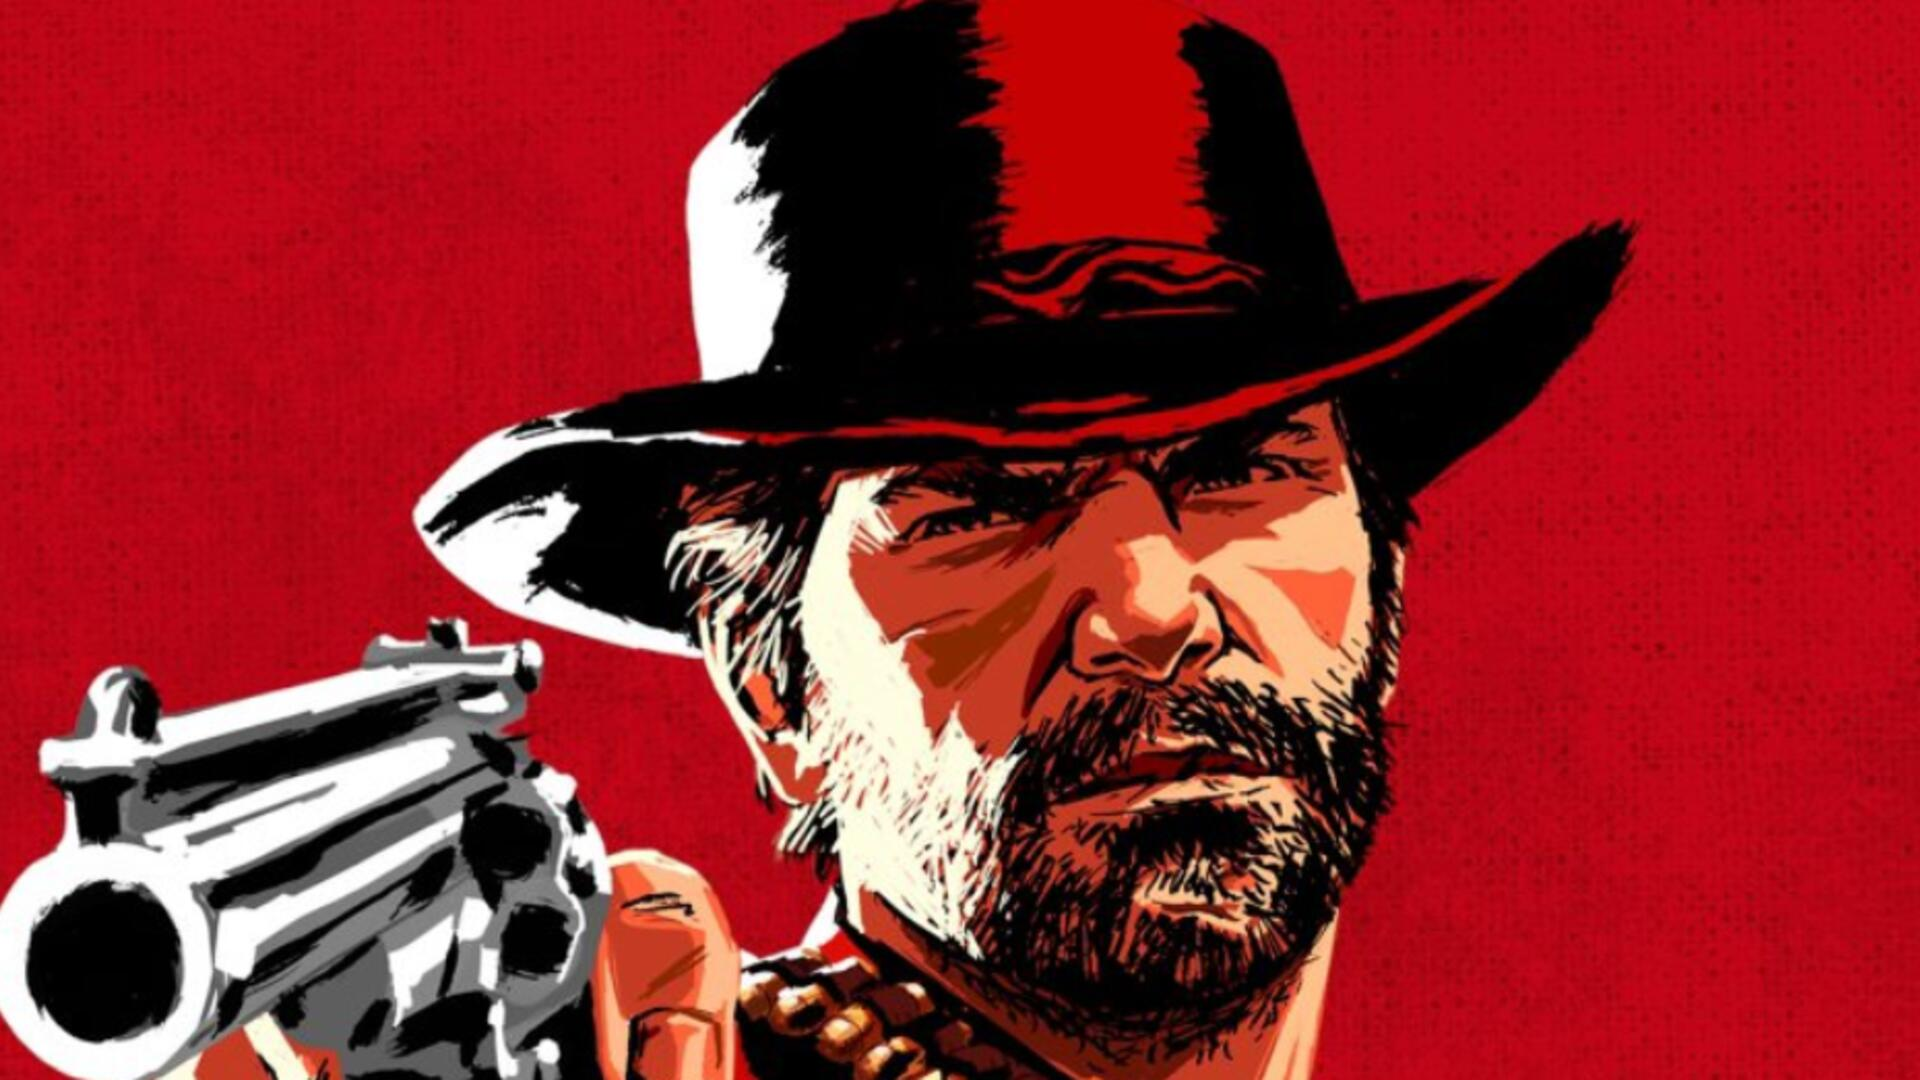 New Red Dead Redemption 2 Official Trailer in Two Days